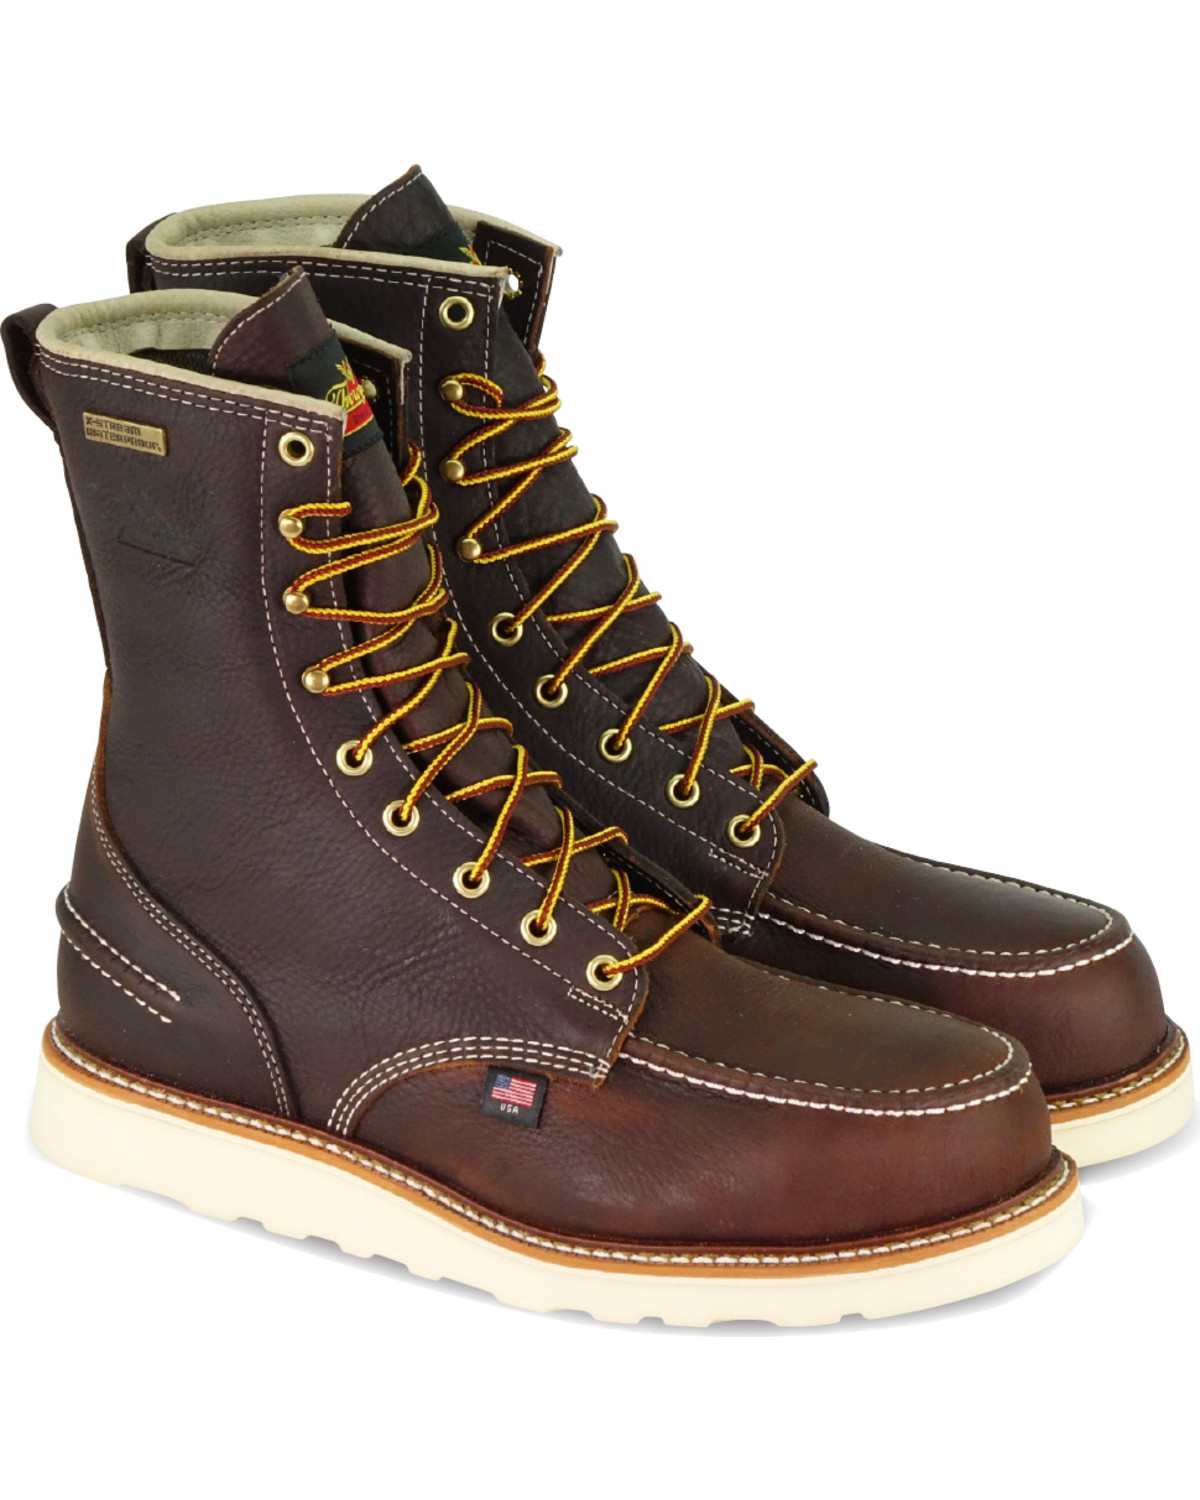 4685bb607b7 Thorogood Men's Brown American Heritage 8